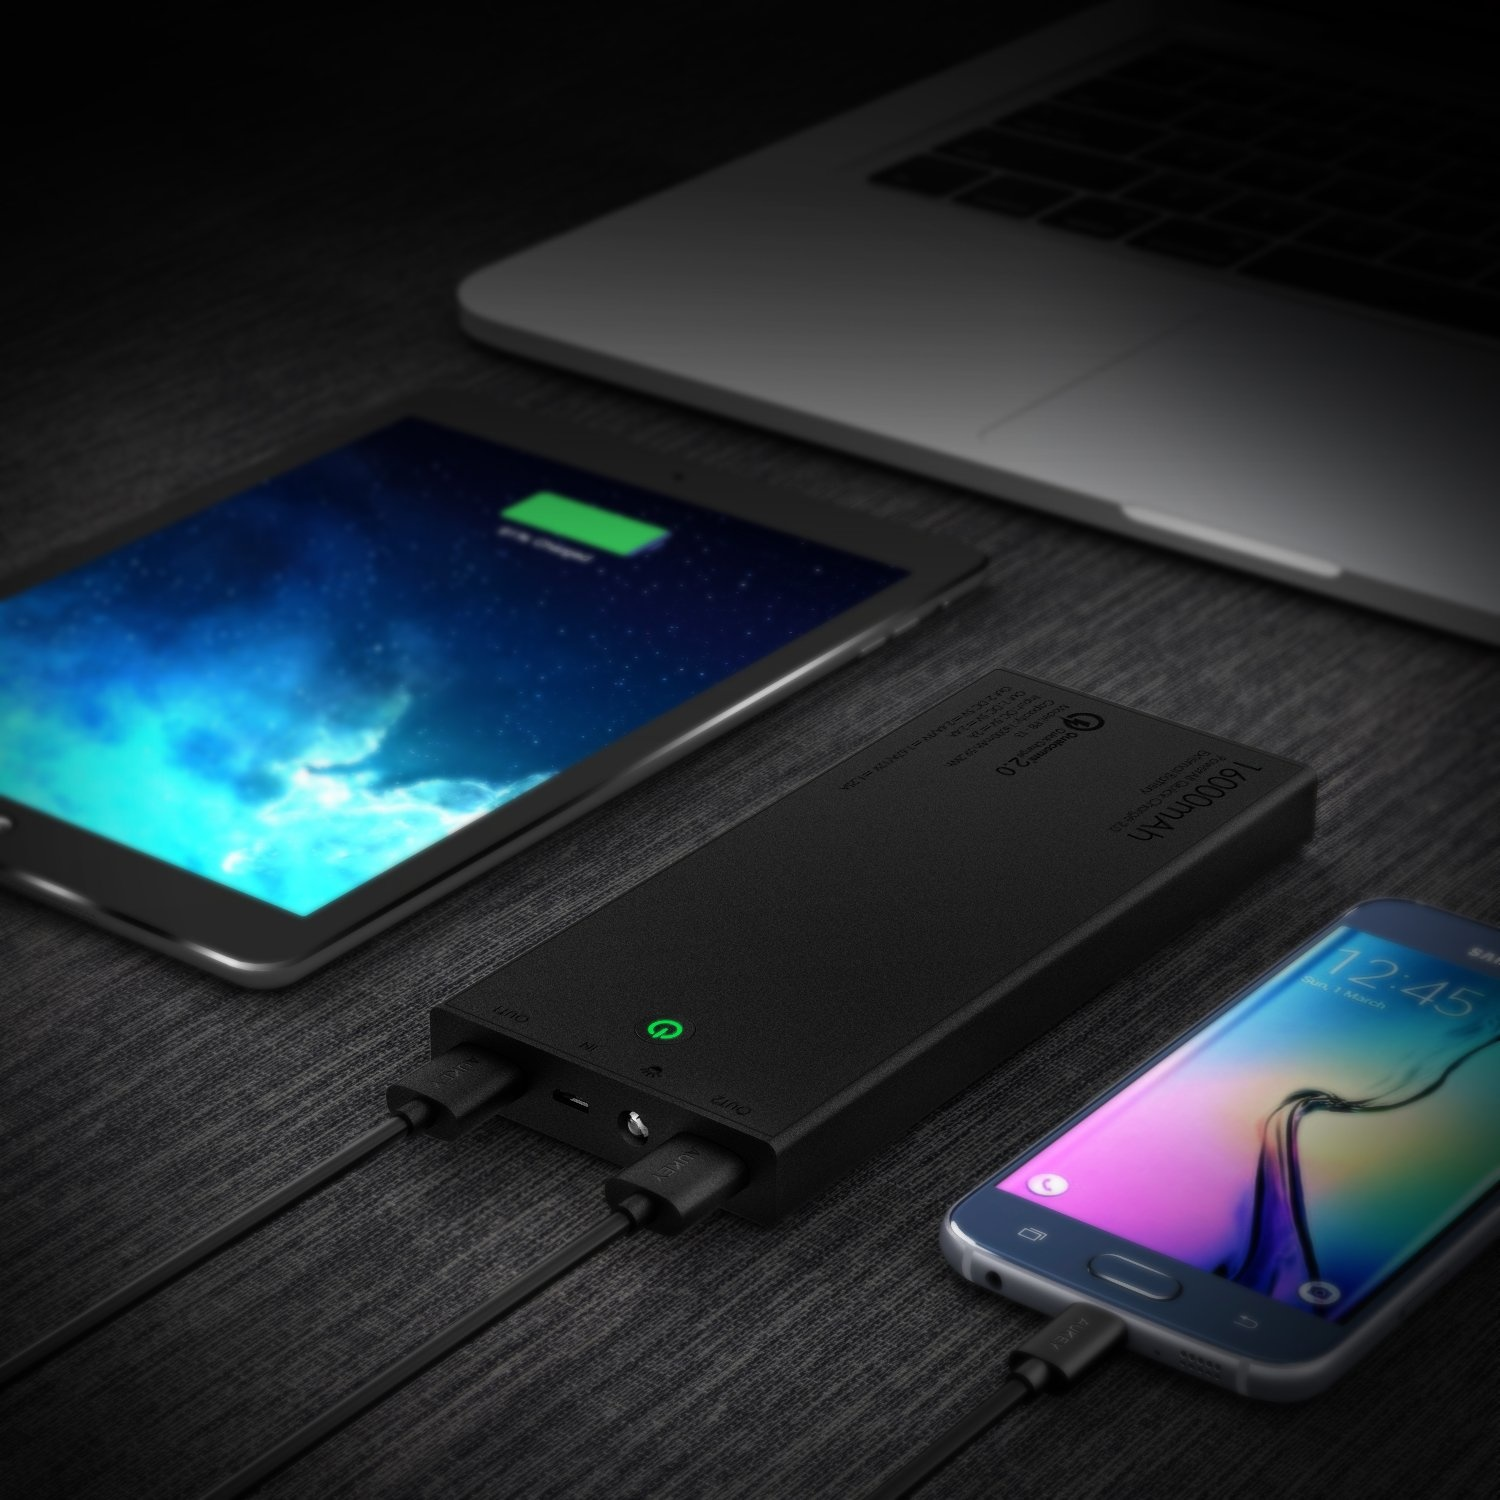 AUKEY PB-T3 16000mAh Quick Charge Power Bank 16000 mAh, batterijpakket met 5V / 2.4A + Quick Charge uitgangen, voor iPhone X / 8 / Plus / 7 / 6s, Samsung S8 + / S8, iPad